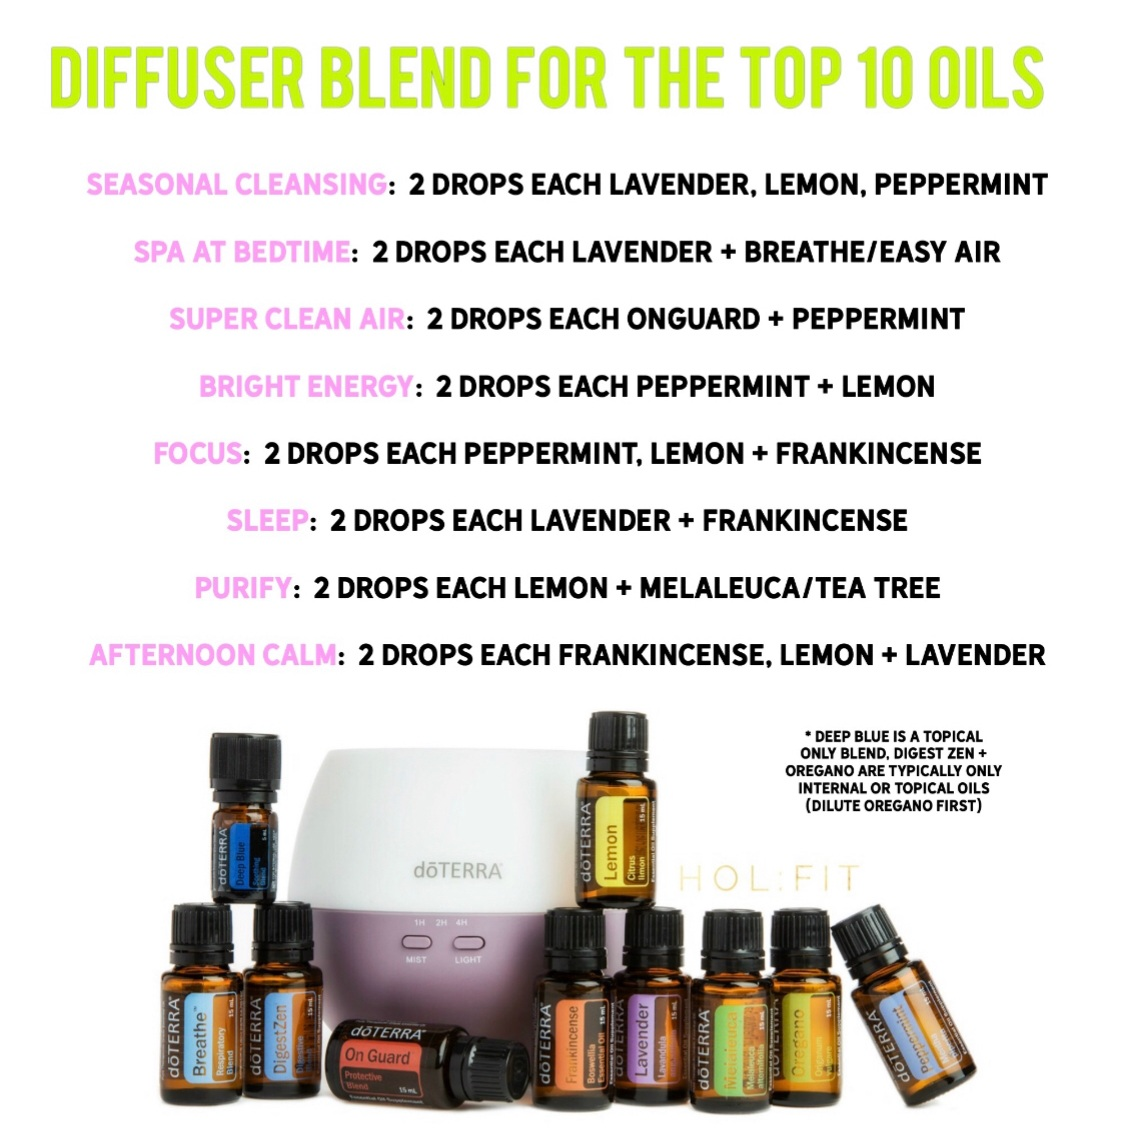 HOLFIT diffuser blends for the Top 10 Oils